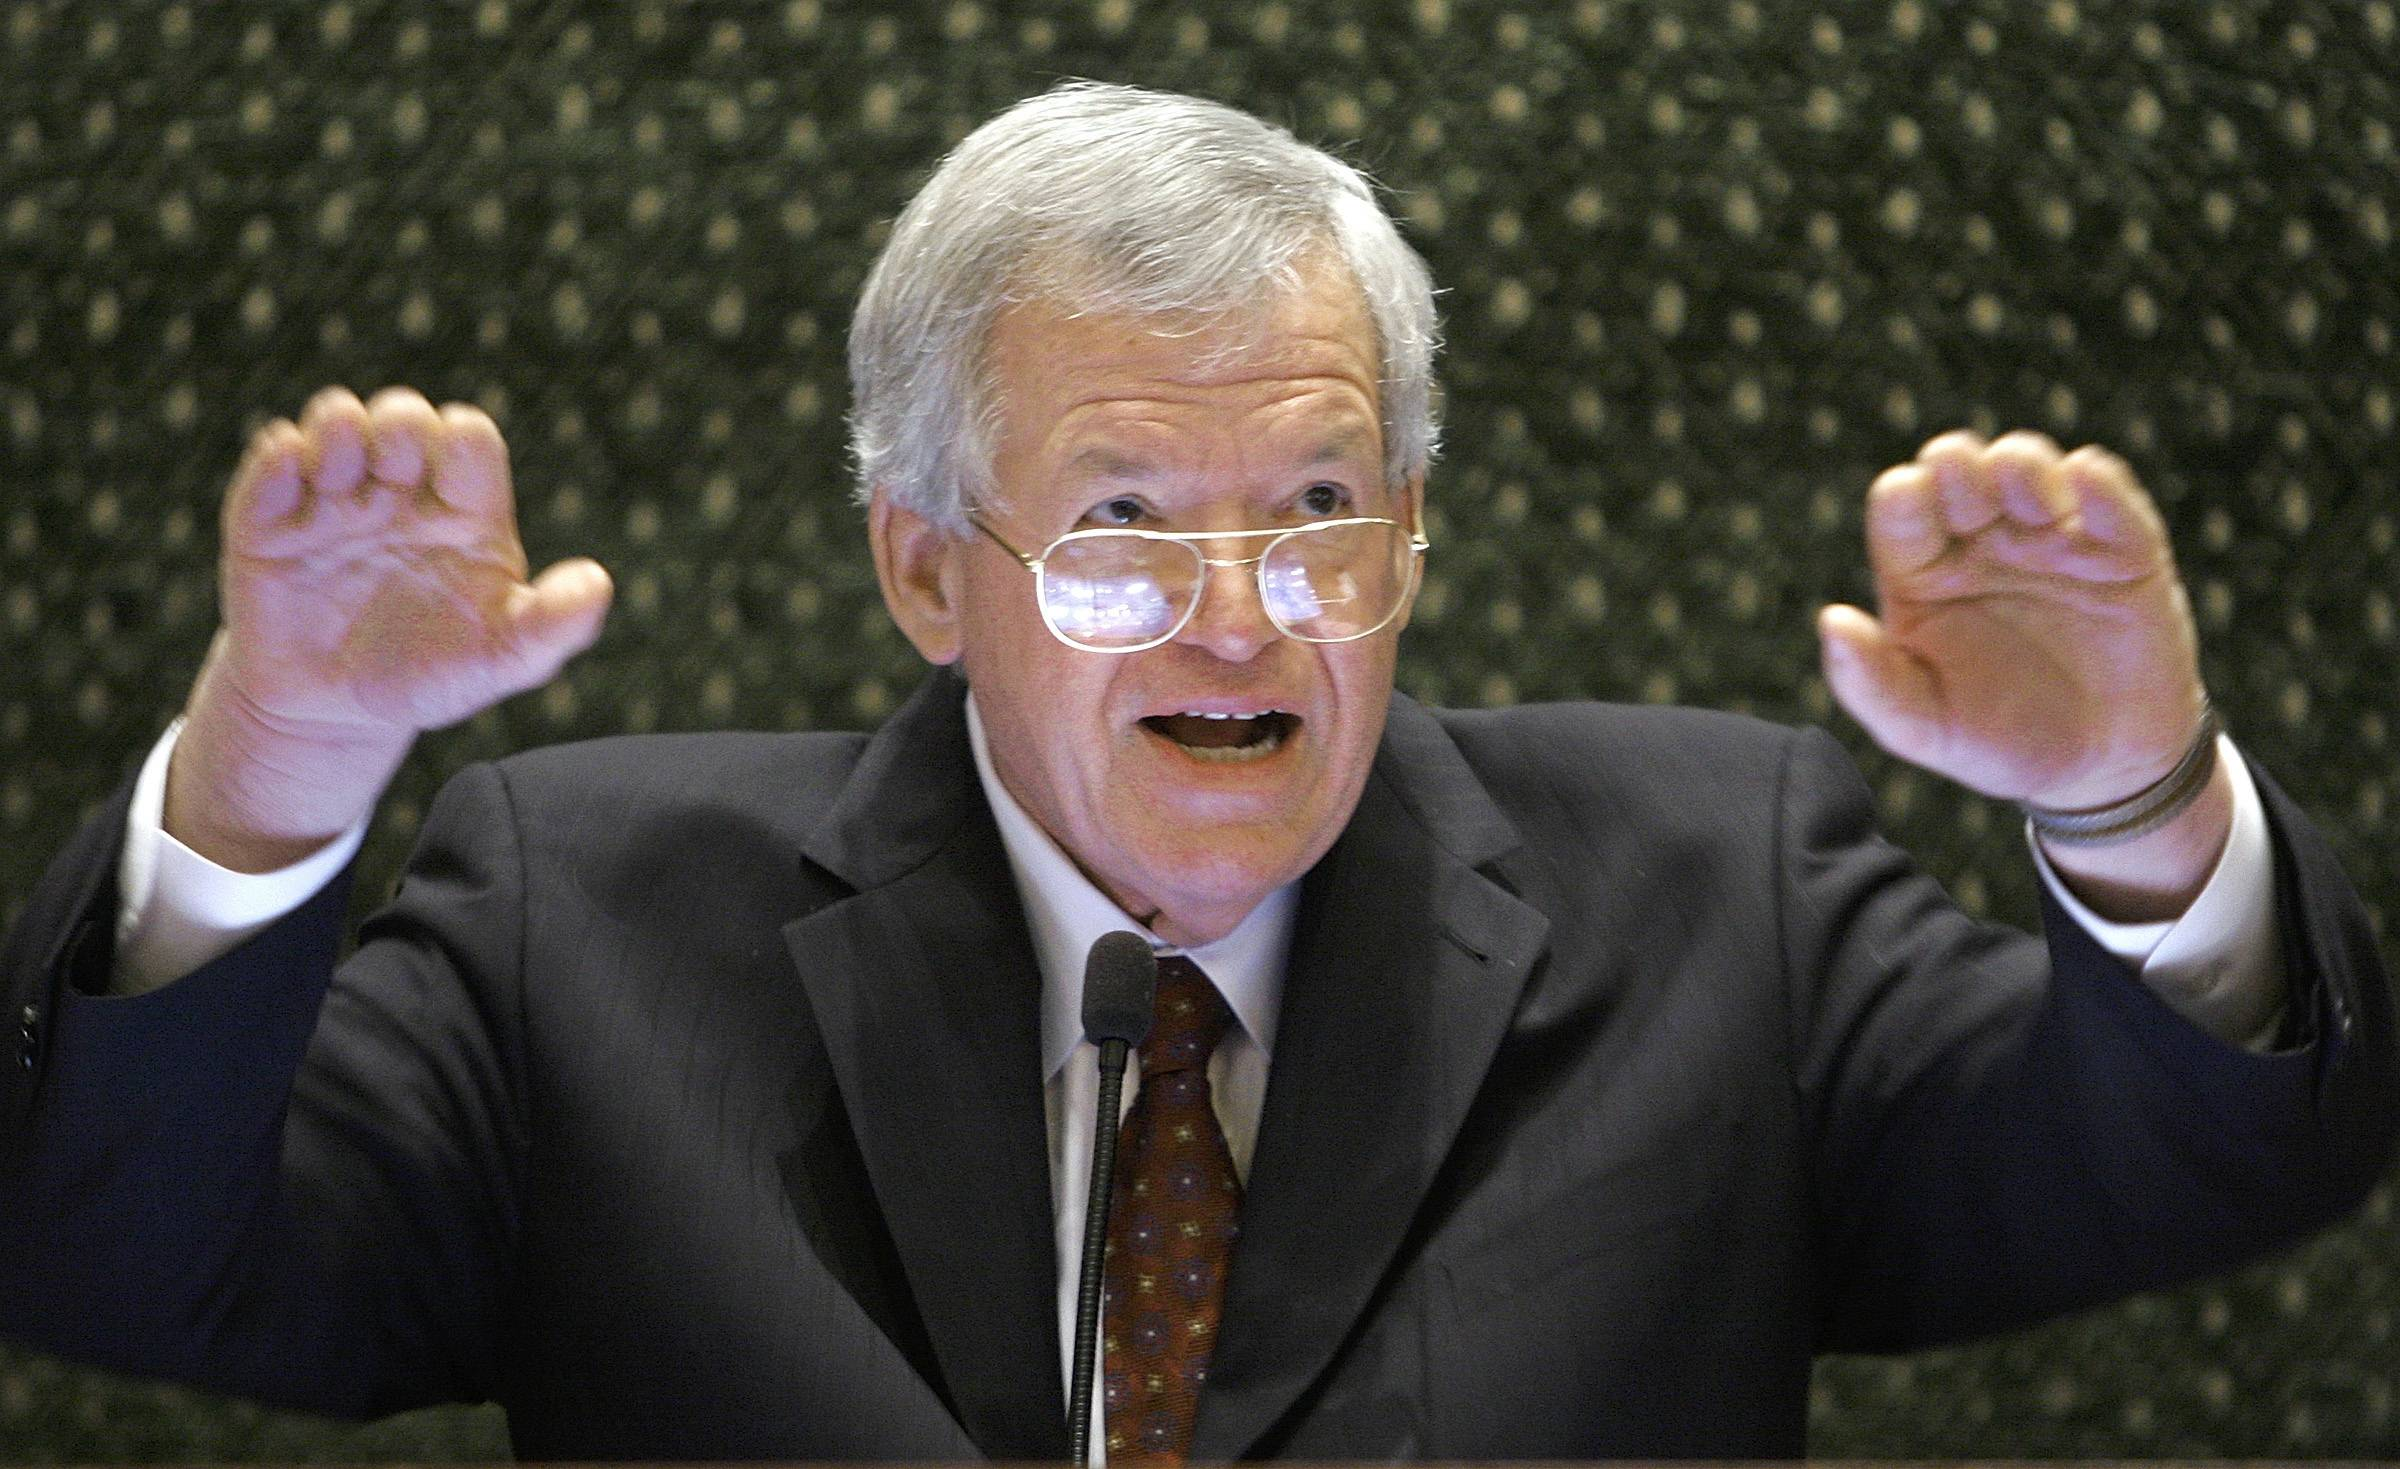 Hastert's former school district: No report of misconduct